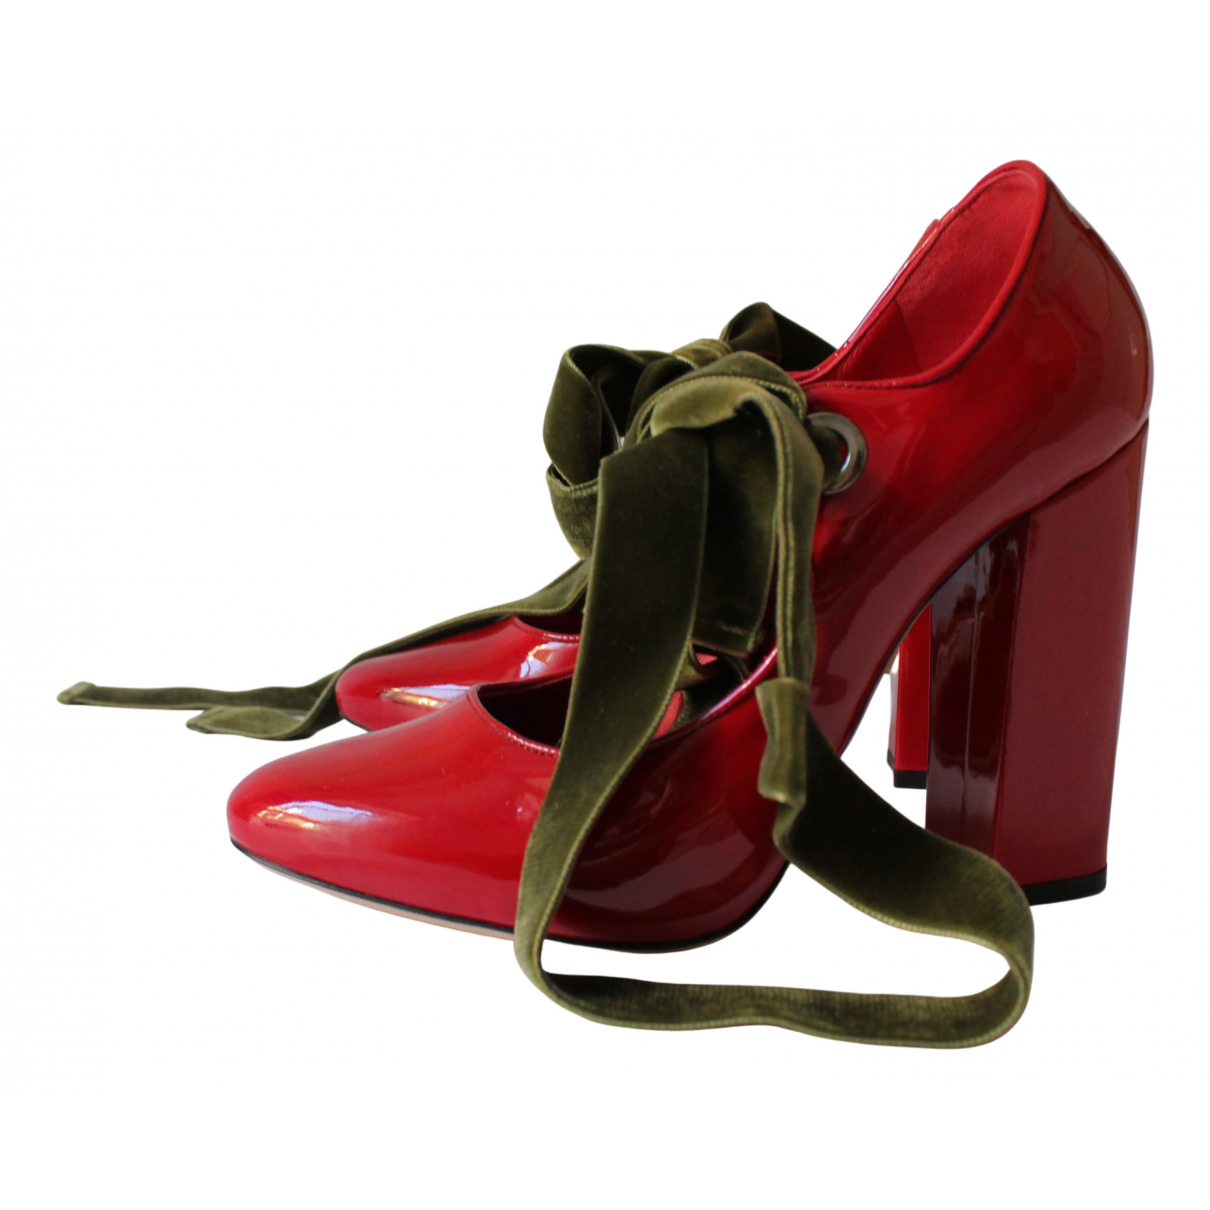 Le Silla \N Pumps in  Rot Lackleder